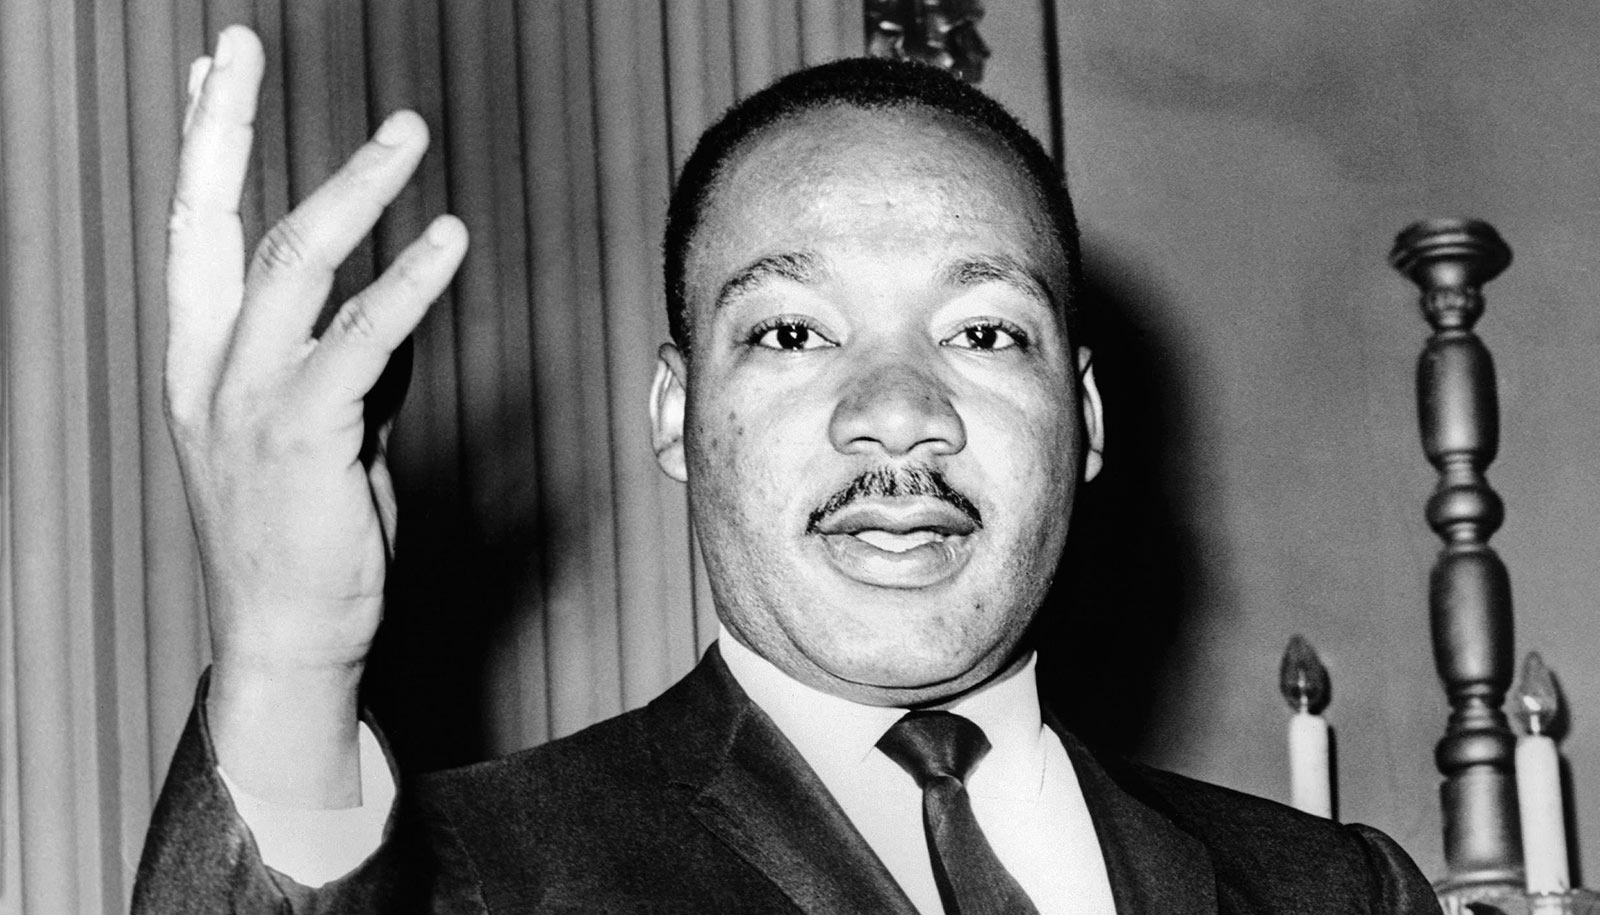 History almost forgot this speech by Dr. Martin Luther King, Jr.